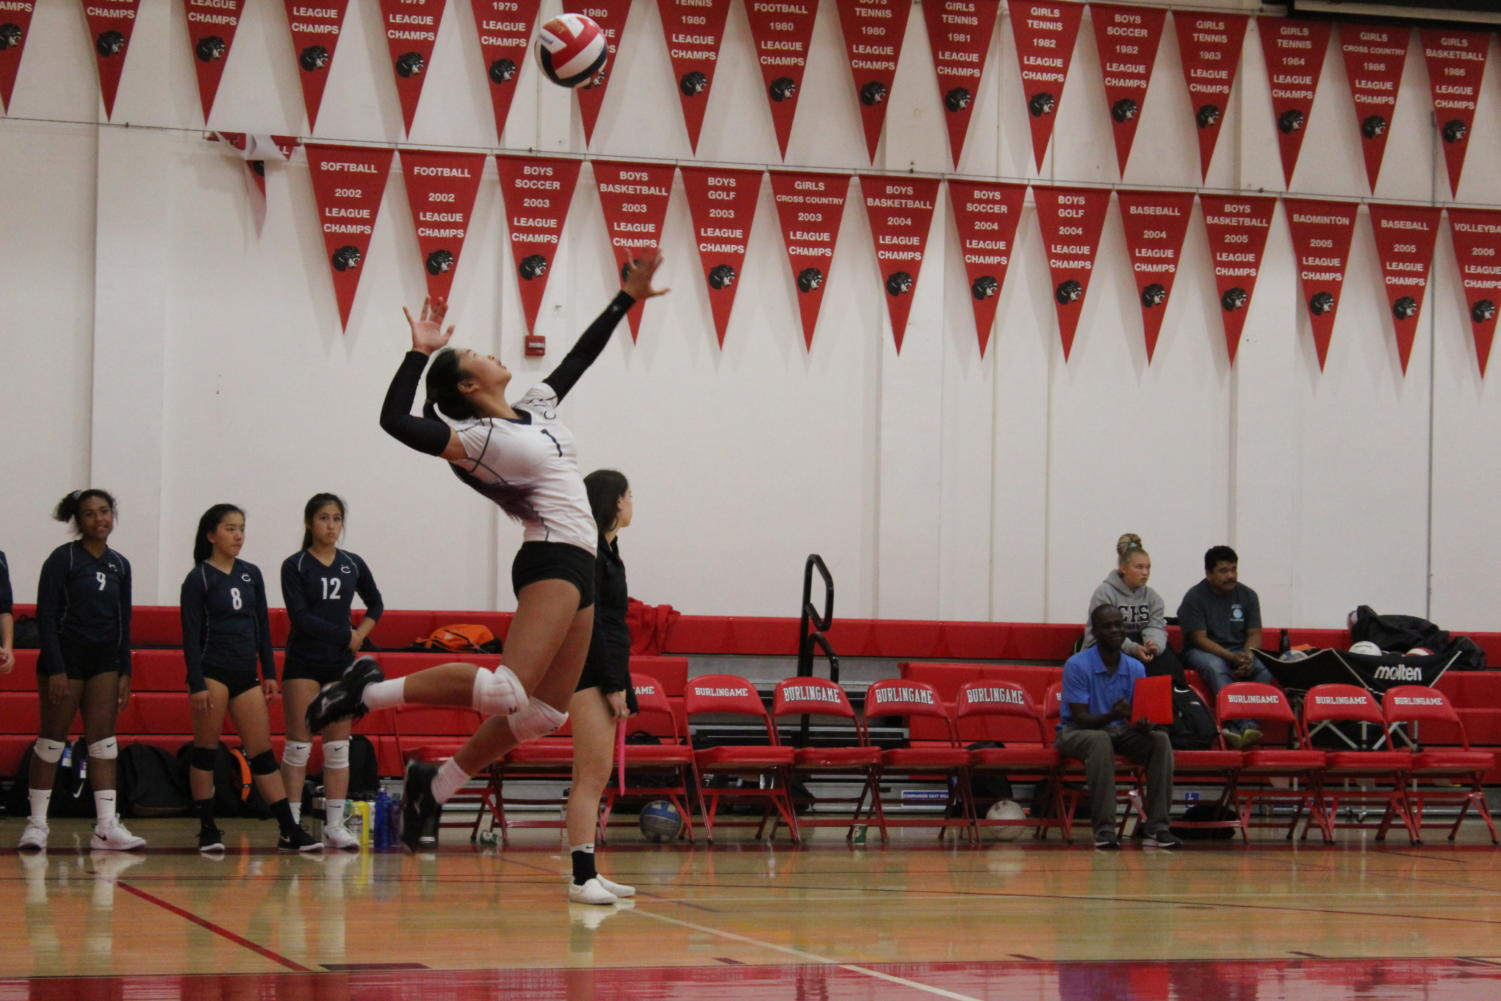 Freshman Jordan Yee serves the ball in an attempt to win a point for the Scots during the first set.